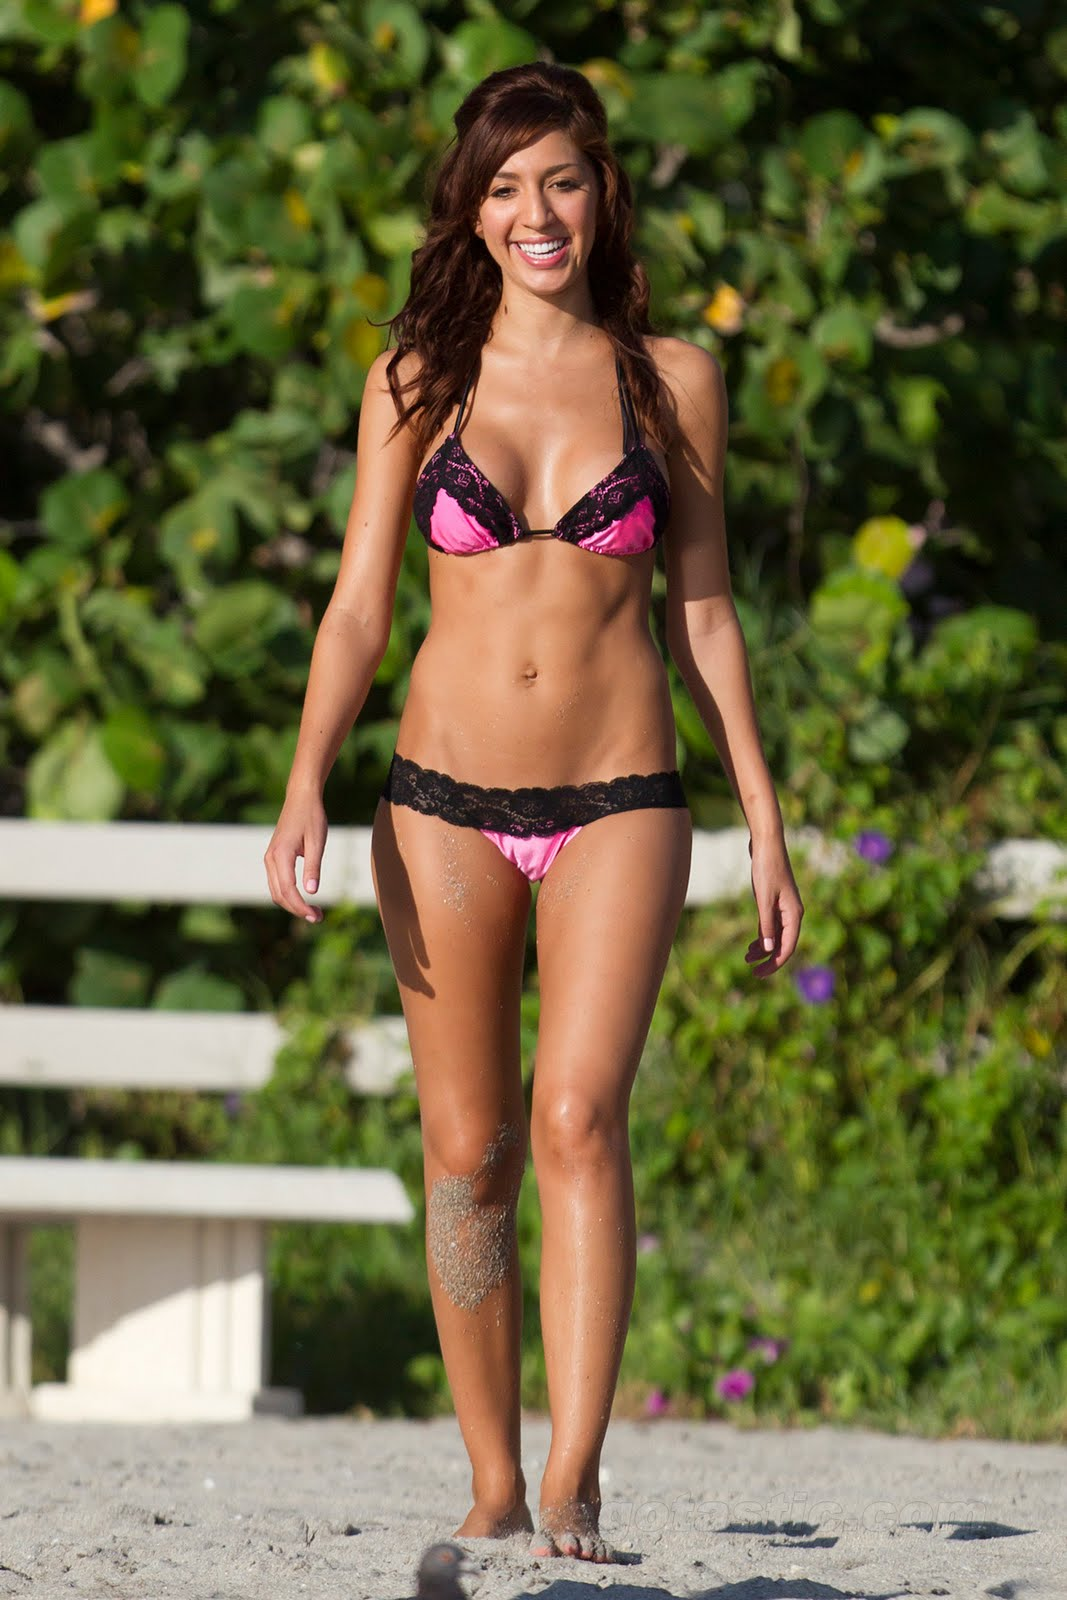 bikini bodies between farrah abraham who we saw in a different little